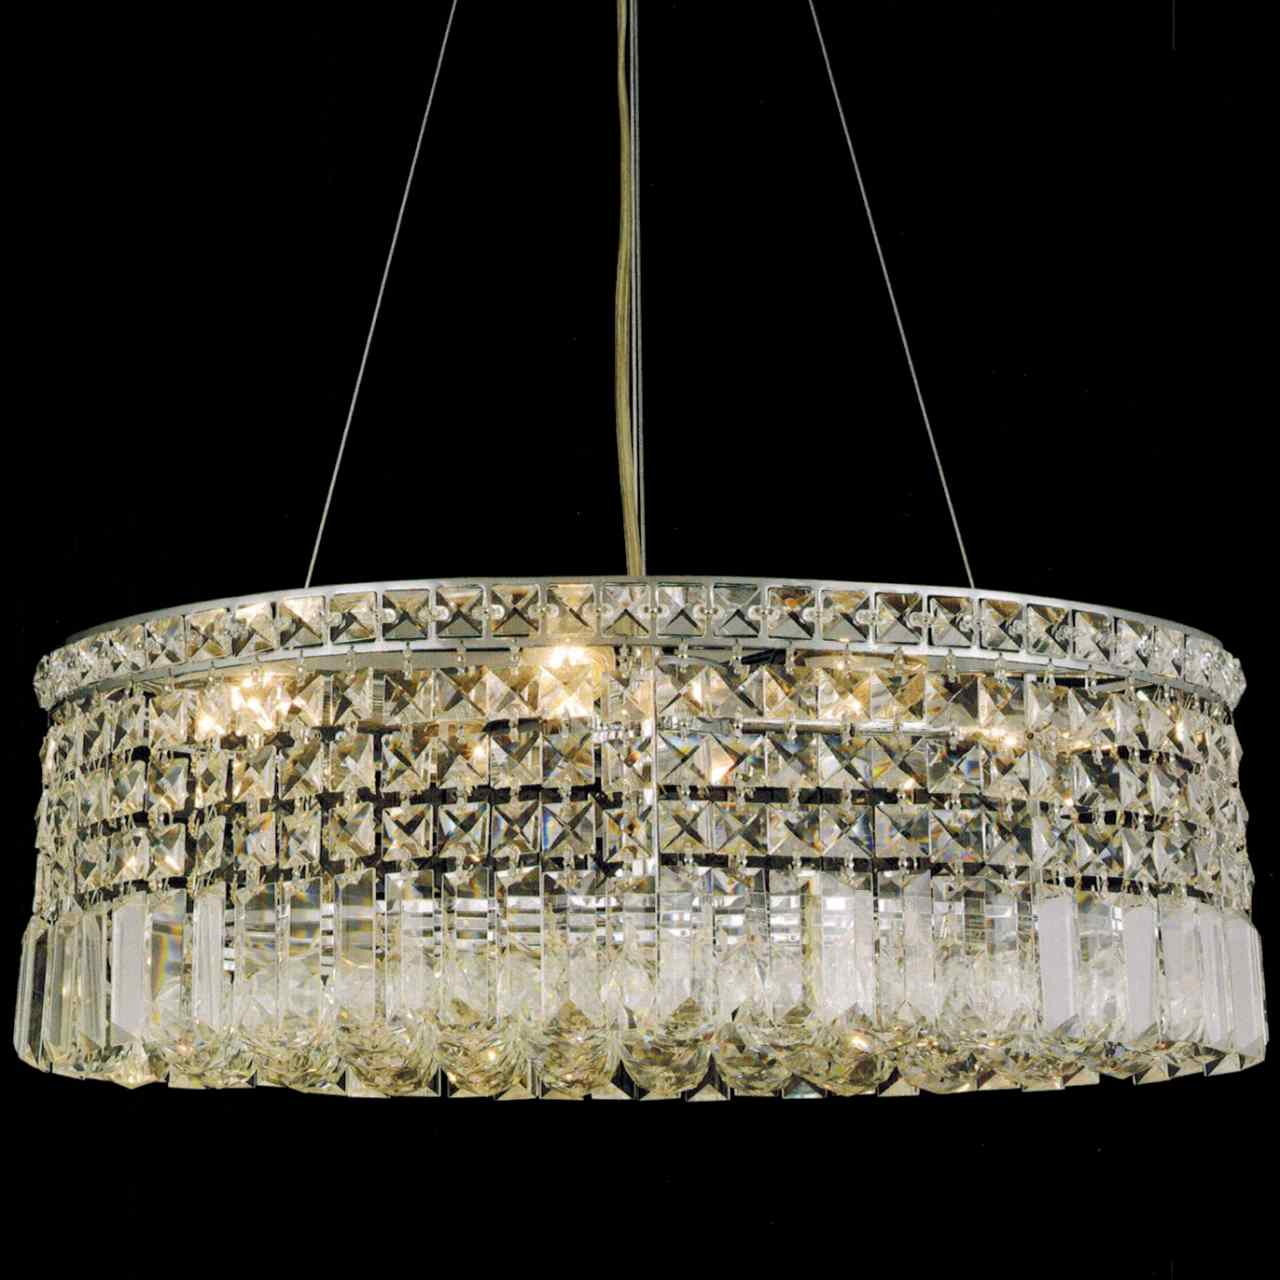 life crystal finish ceiling lamp pendant chandelier by light chrome translucent shade hanging diamond black